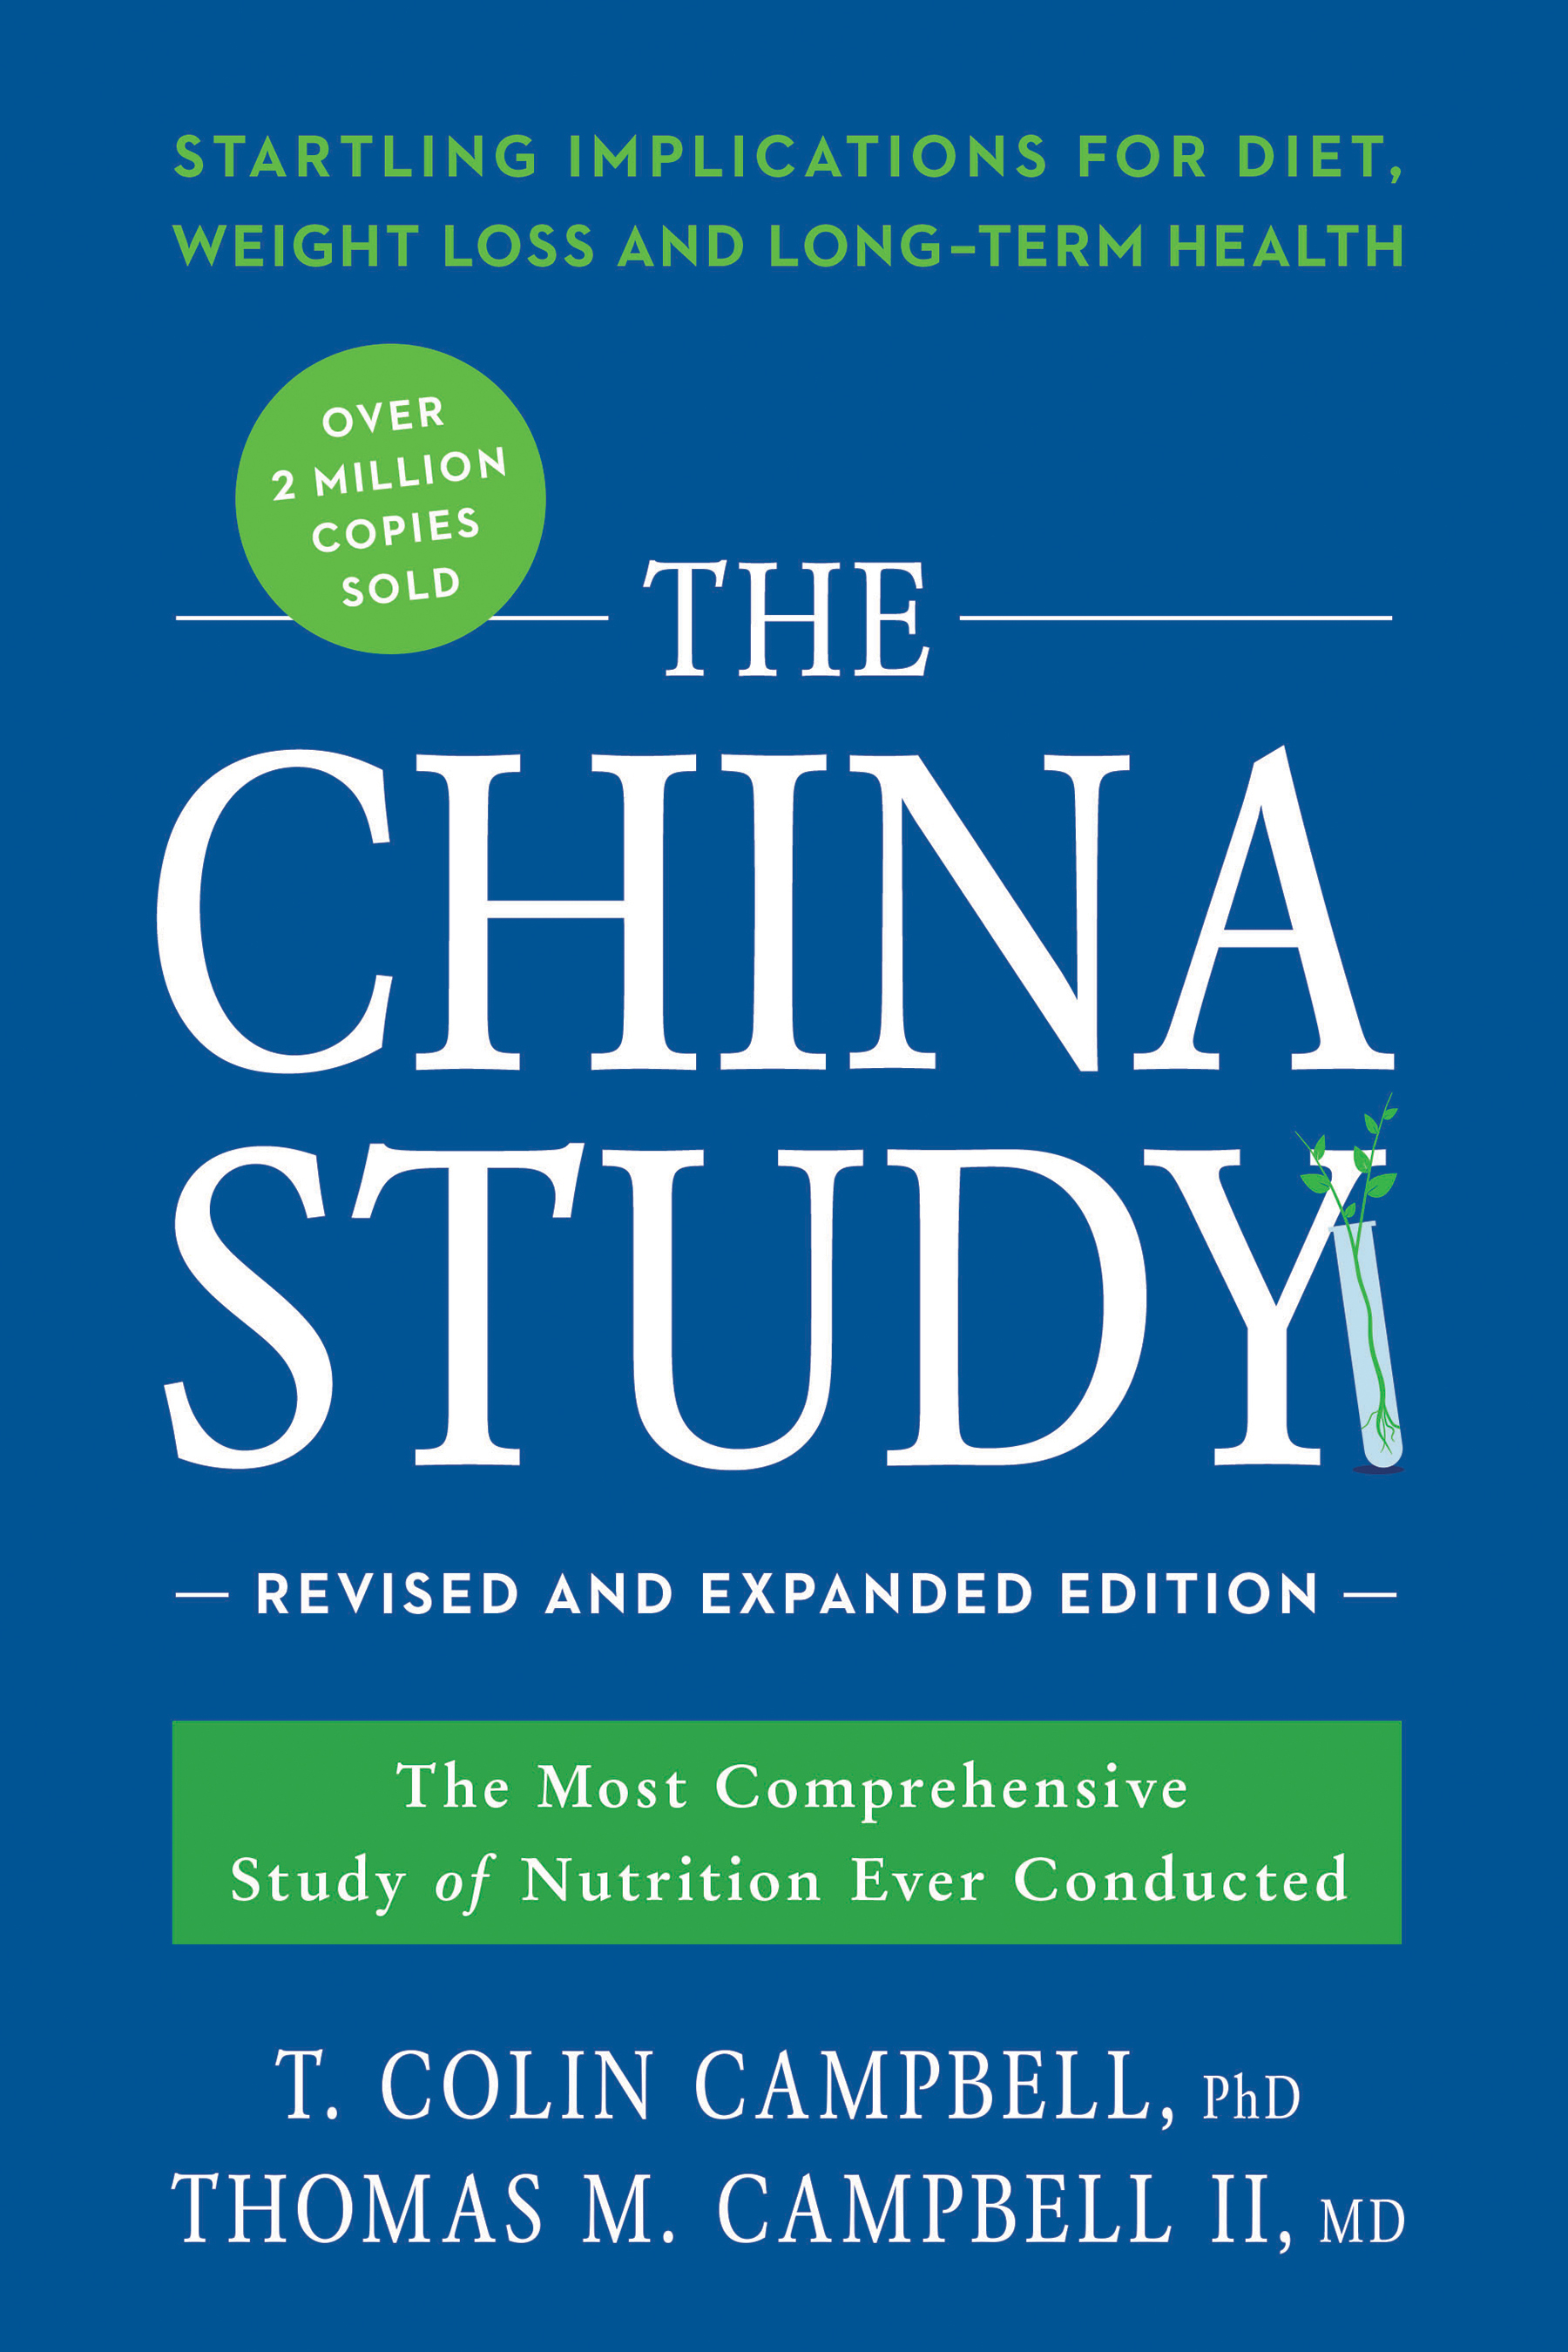 the-china-study-revised-expanded.jpg